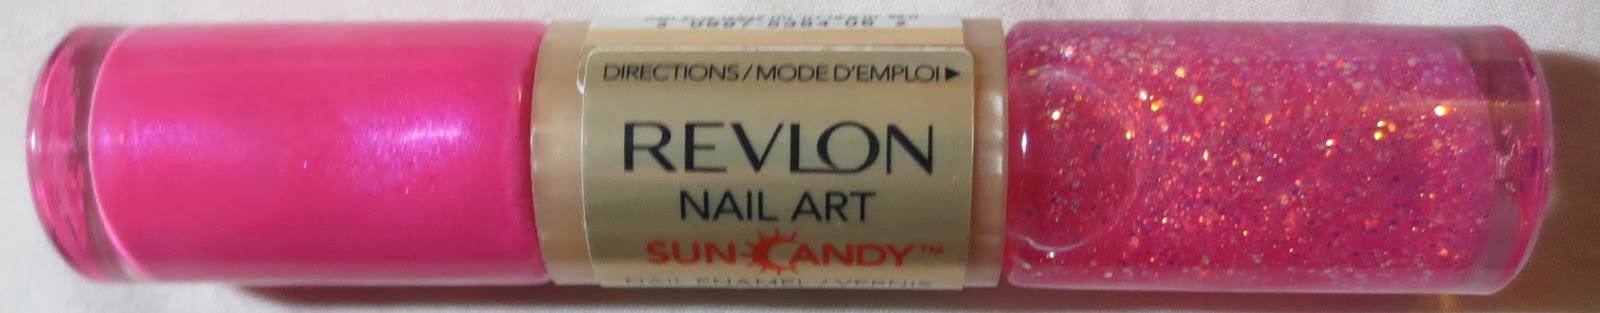 Revlon Nail Art Sun Candy in Shimmering Sunset